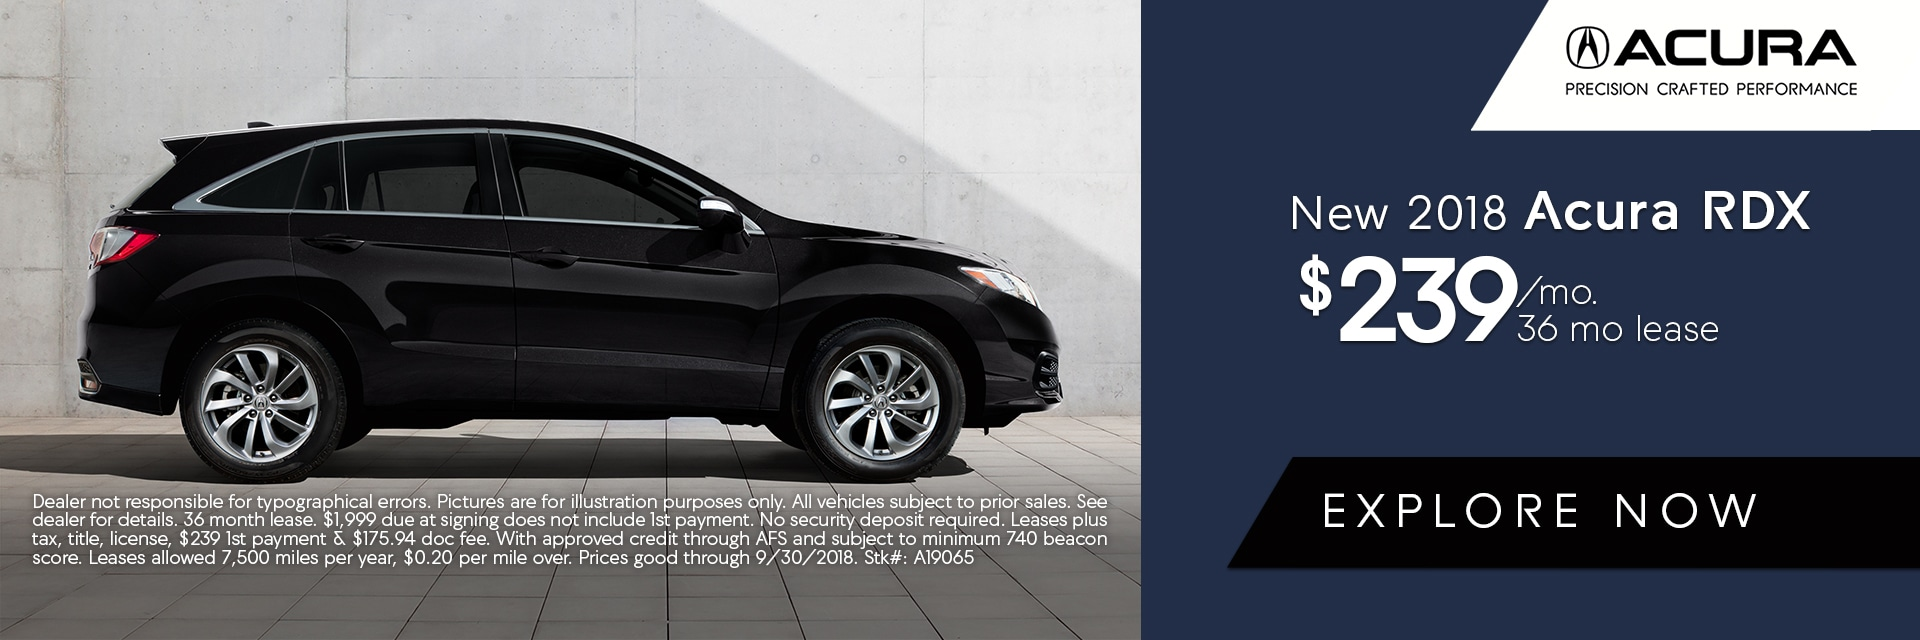 Acura RDX Lease Deal